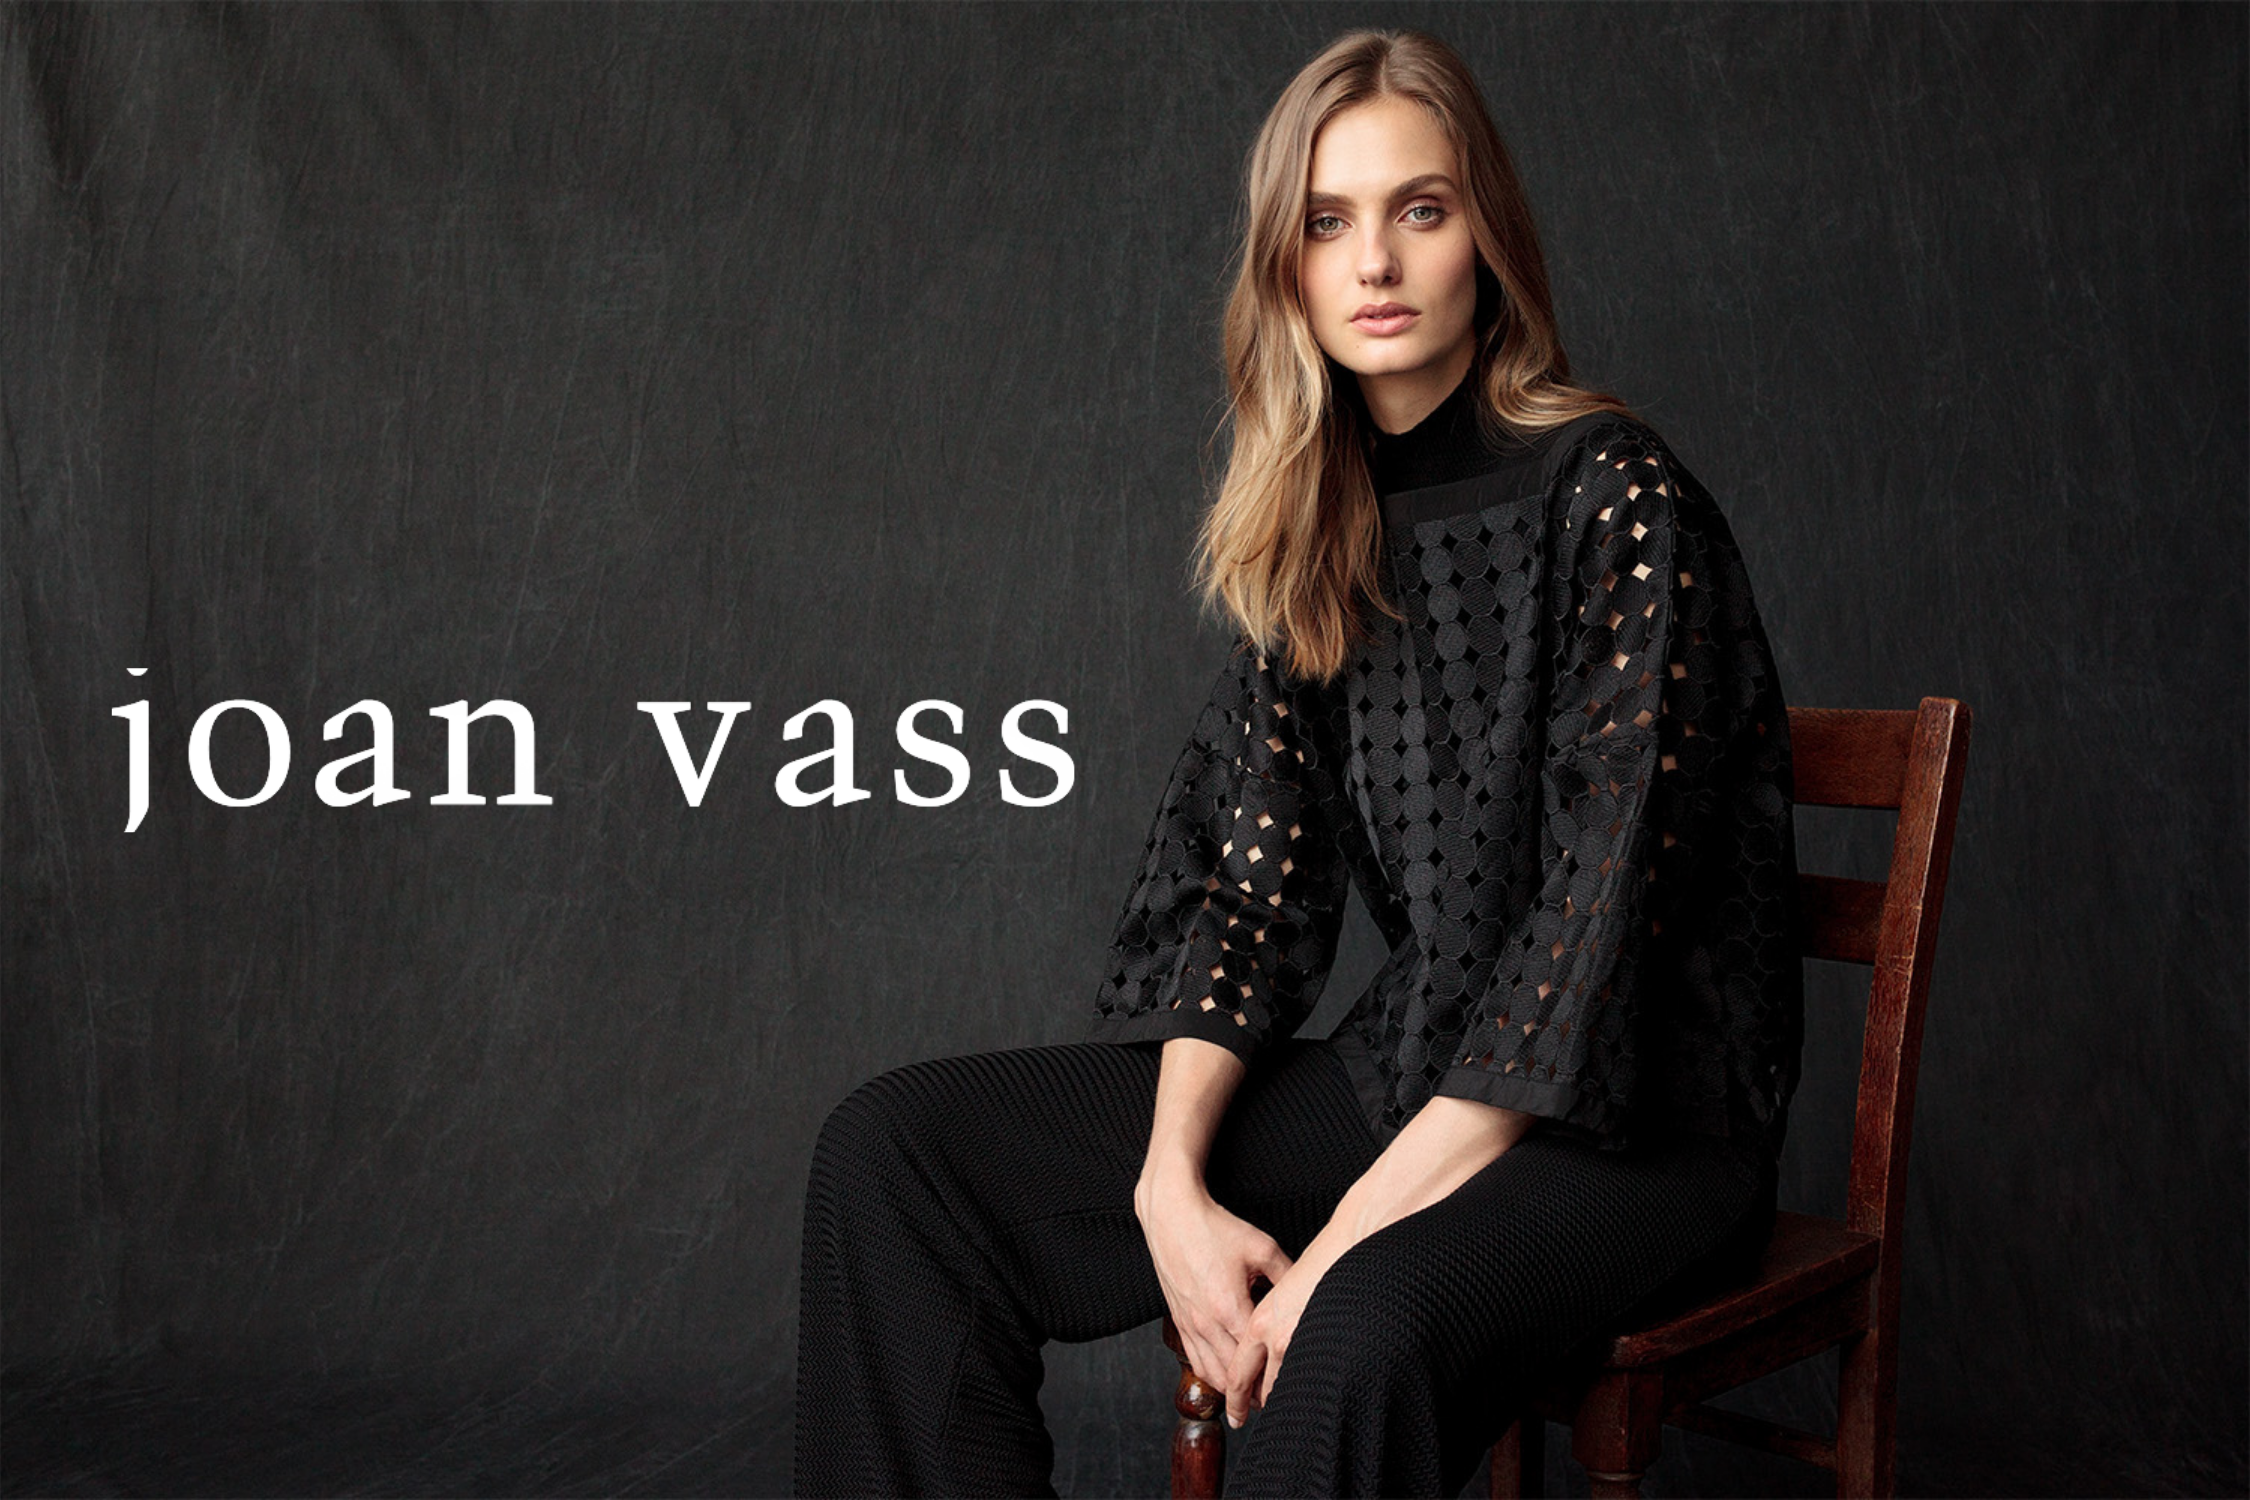 JOAN VASS CAMPAIGN FT. MARTA BEZ@NEXT